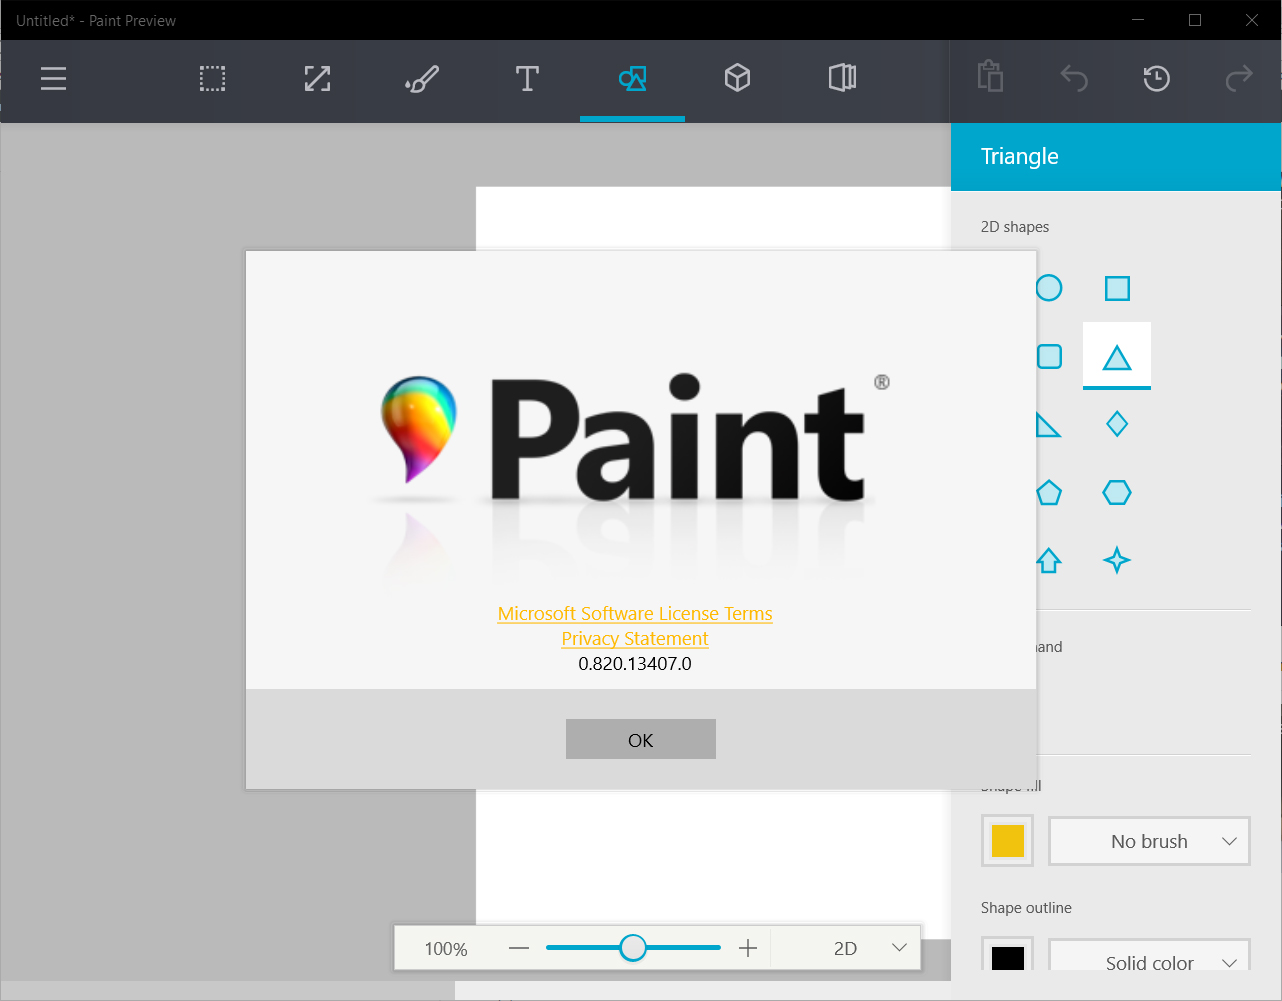 paint-preview